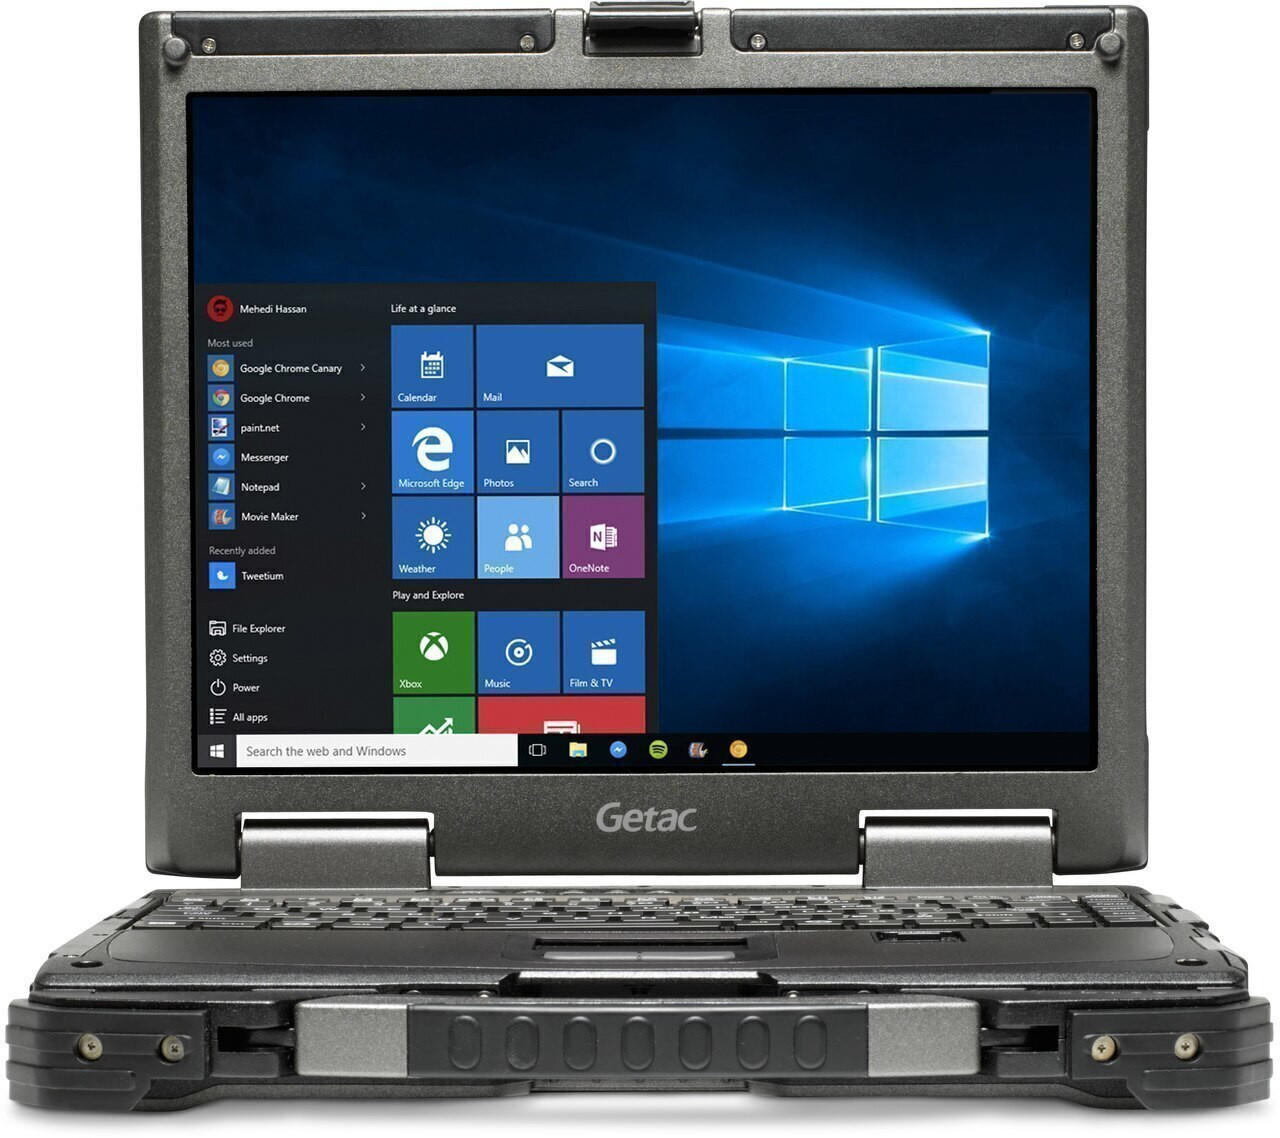 """Getac B300 G7 ,Intel Core i5-8250U Processor 1.6GHz,13.3"""" (Without Webcam),Win10 Pro x64 with 8GB RAM ,256GB SSD,Sunlight Readable (LCD+Touchscreen)Membrane Backlit KBD with Fingerprint,Wifi+BT+GPS+Passthrough,HDMI,PCMCIA, Express Card 54, SD Card Re"""